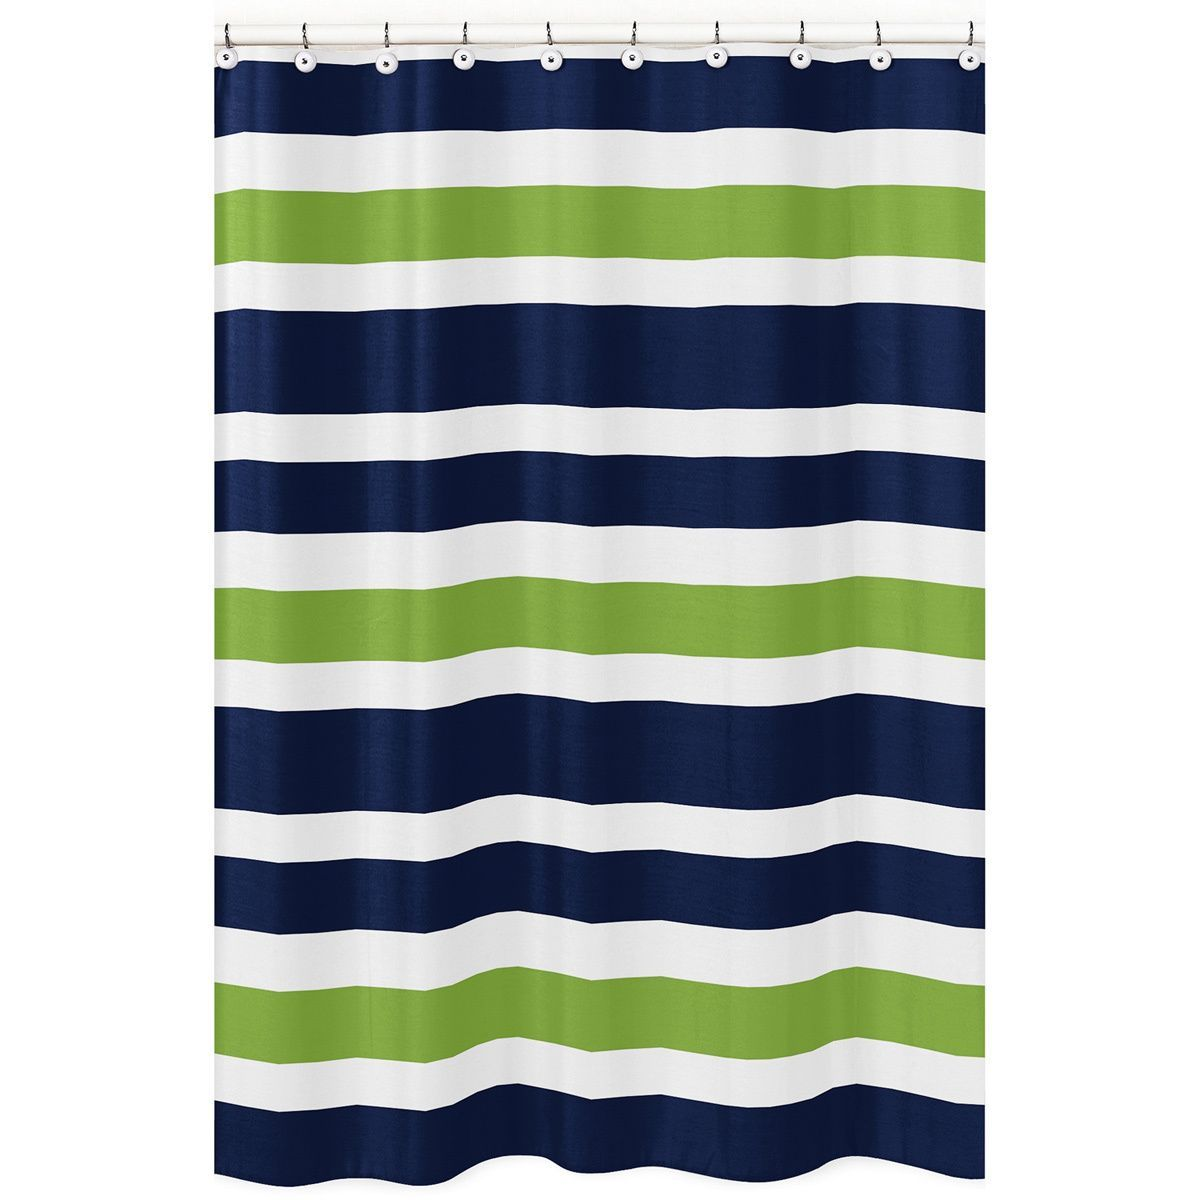 Create an easy bathroom makeover with this sweet jojo designs navy